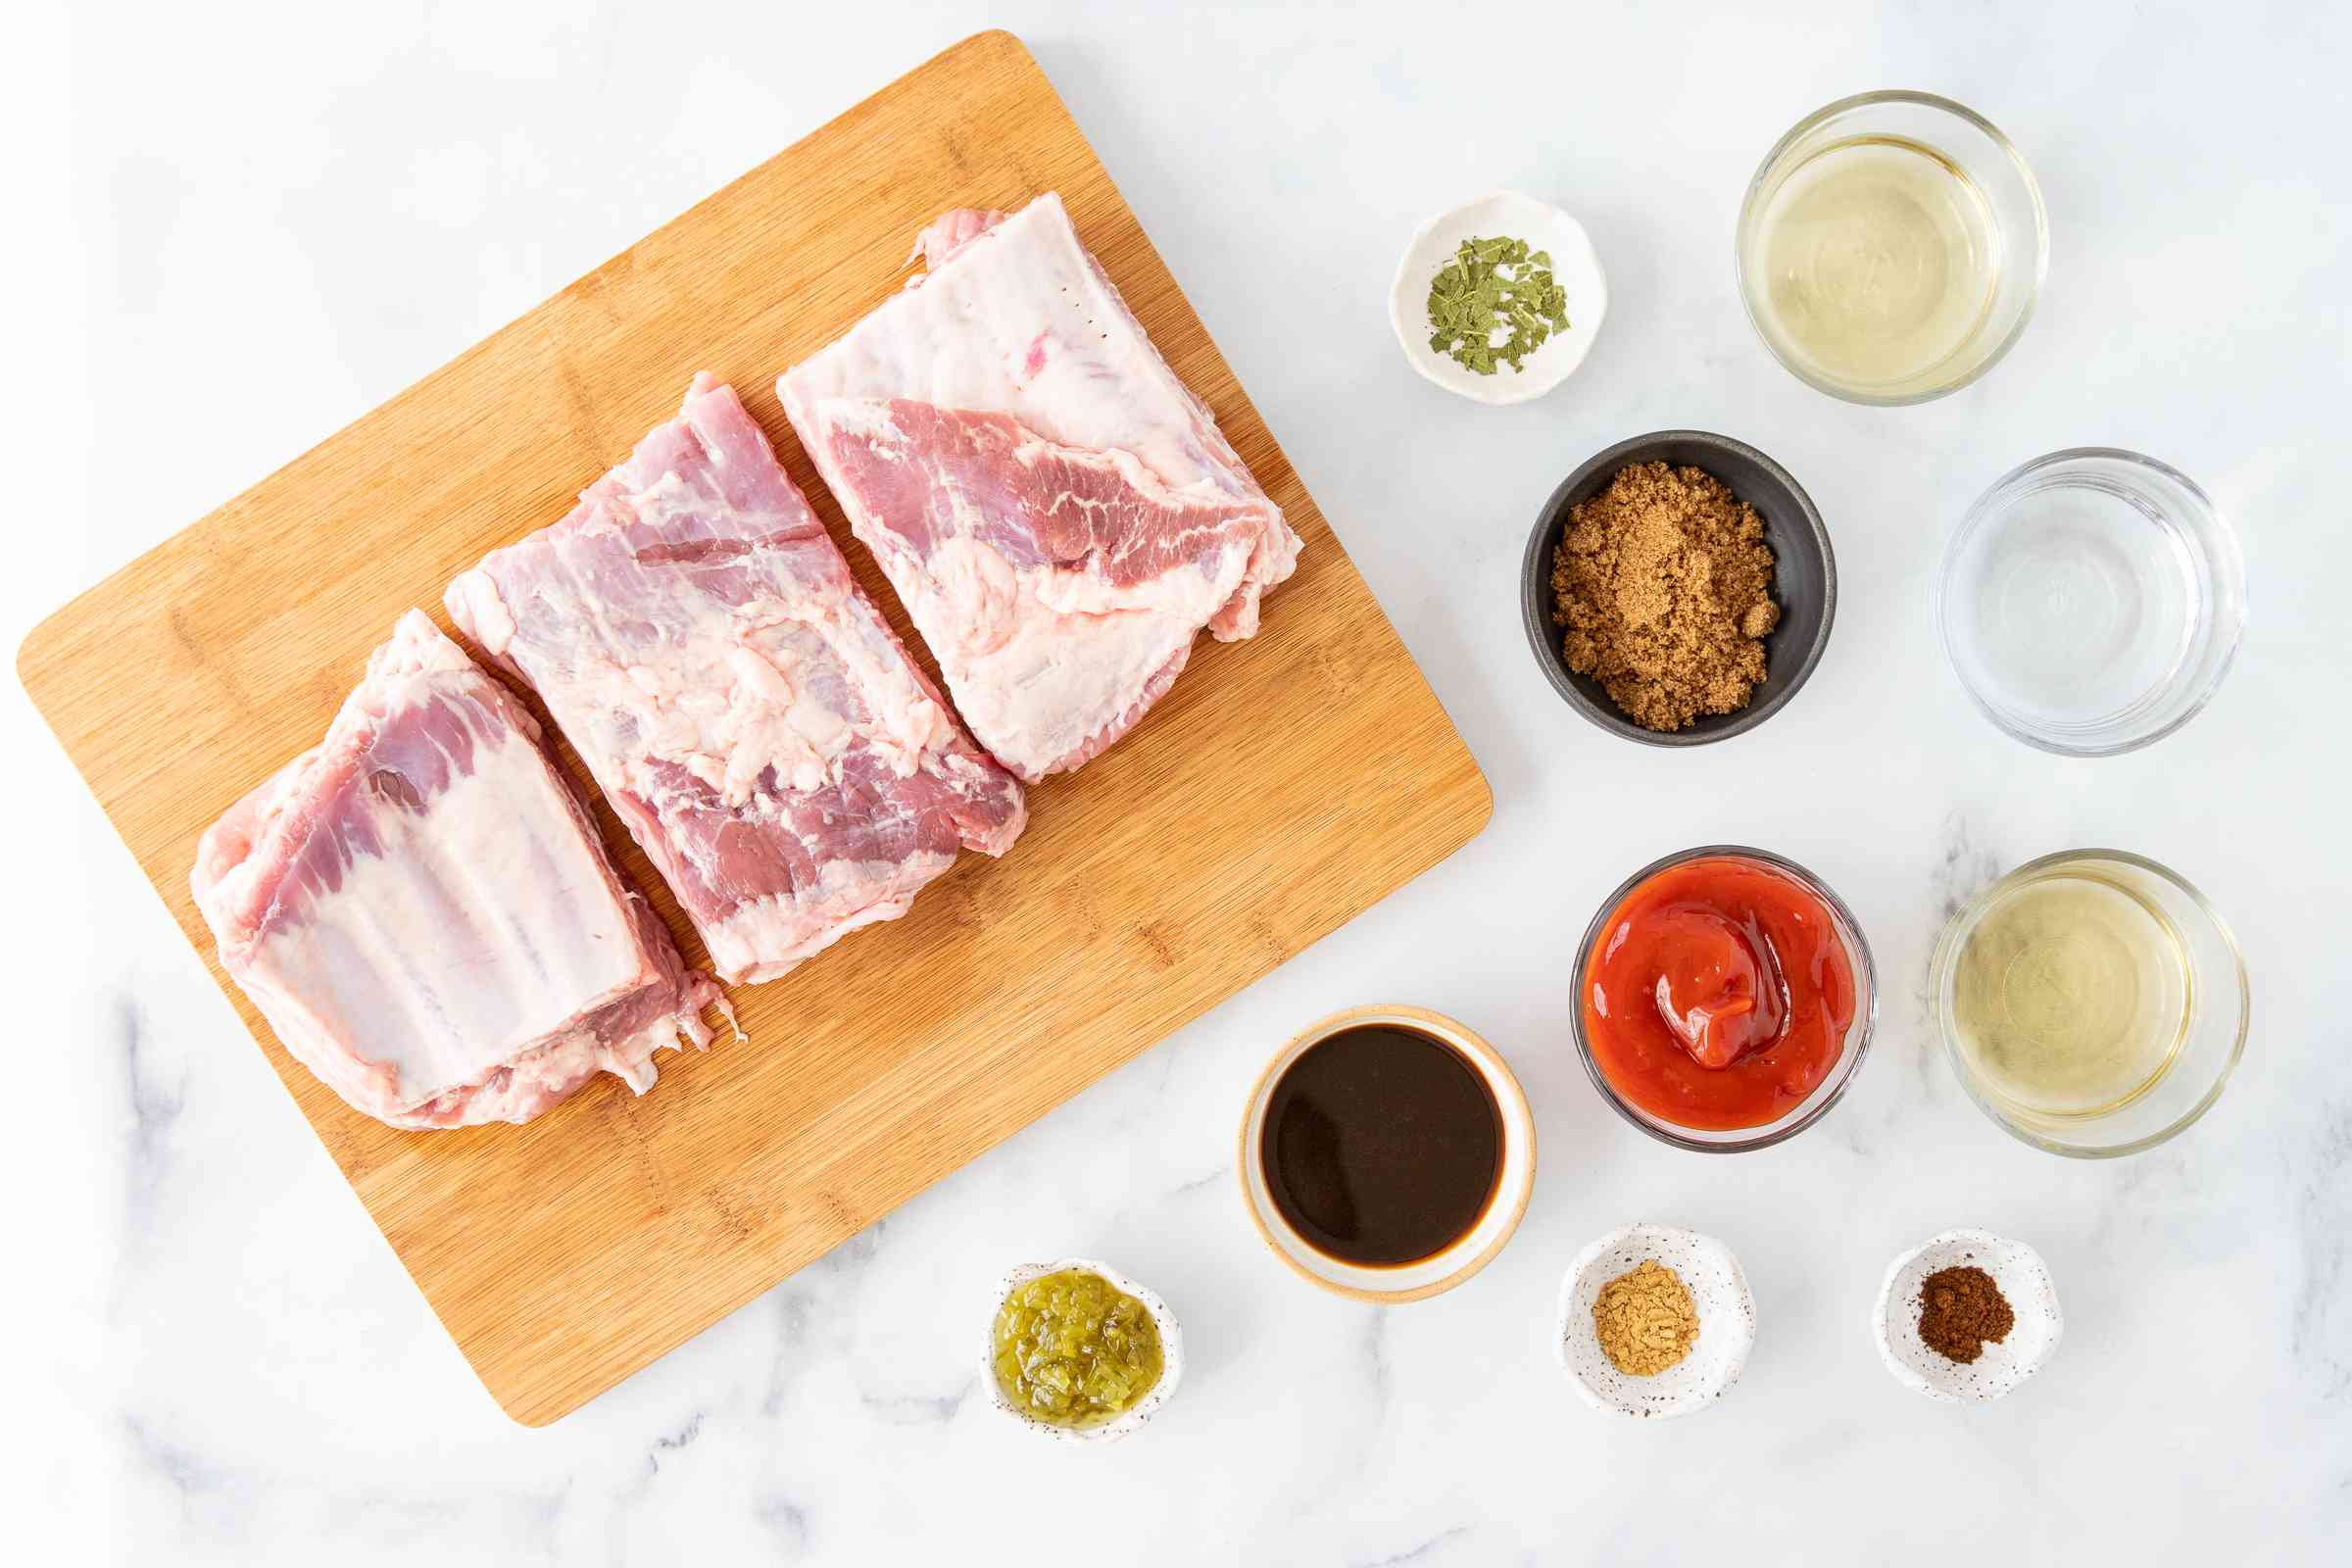 Marinated Grilled Spareribs With Homemade Barbecue Sauce ingredients